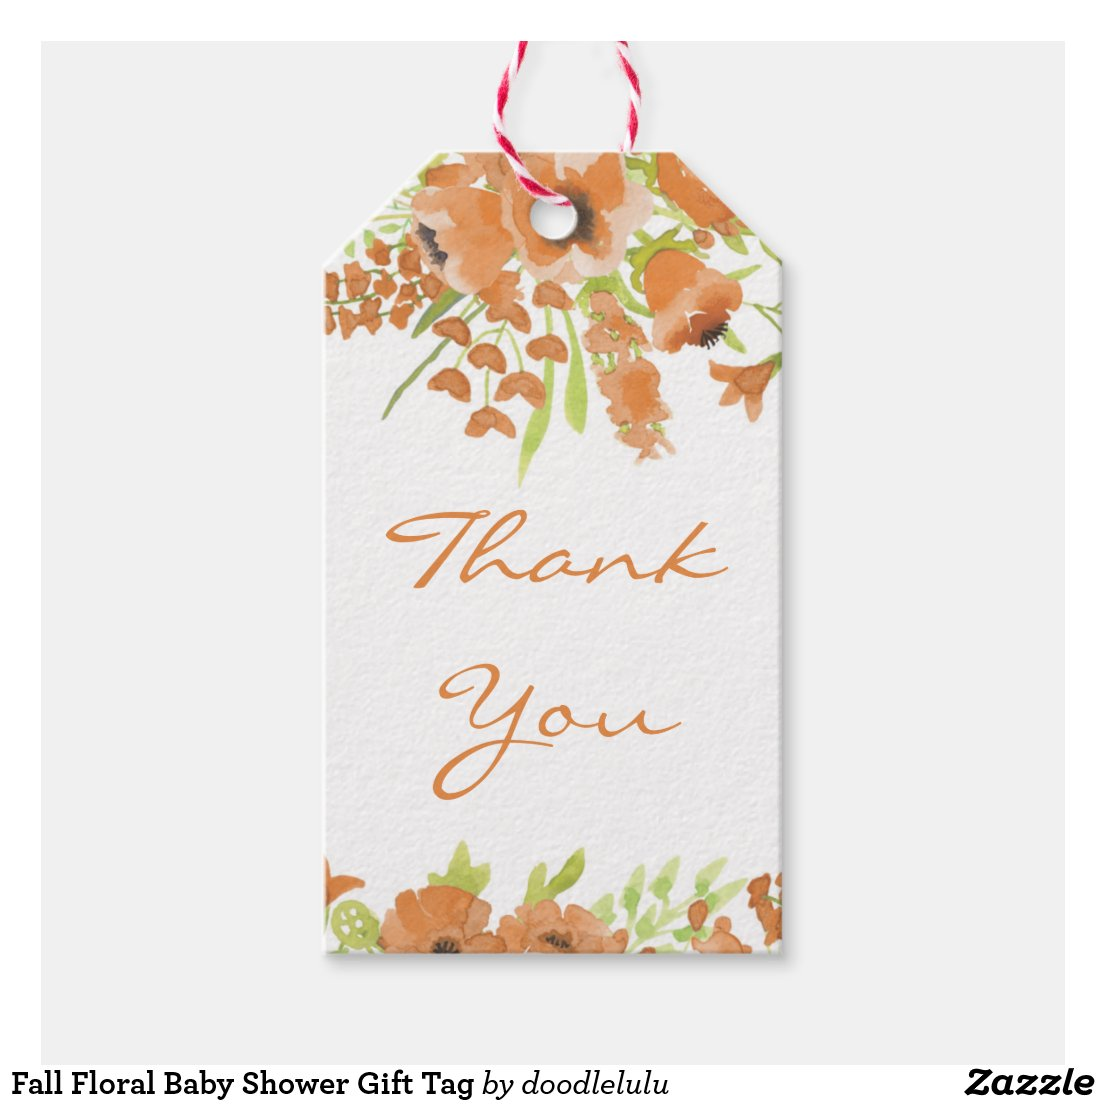 Fall Floral Baby Shower Gift Tag